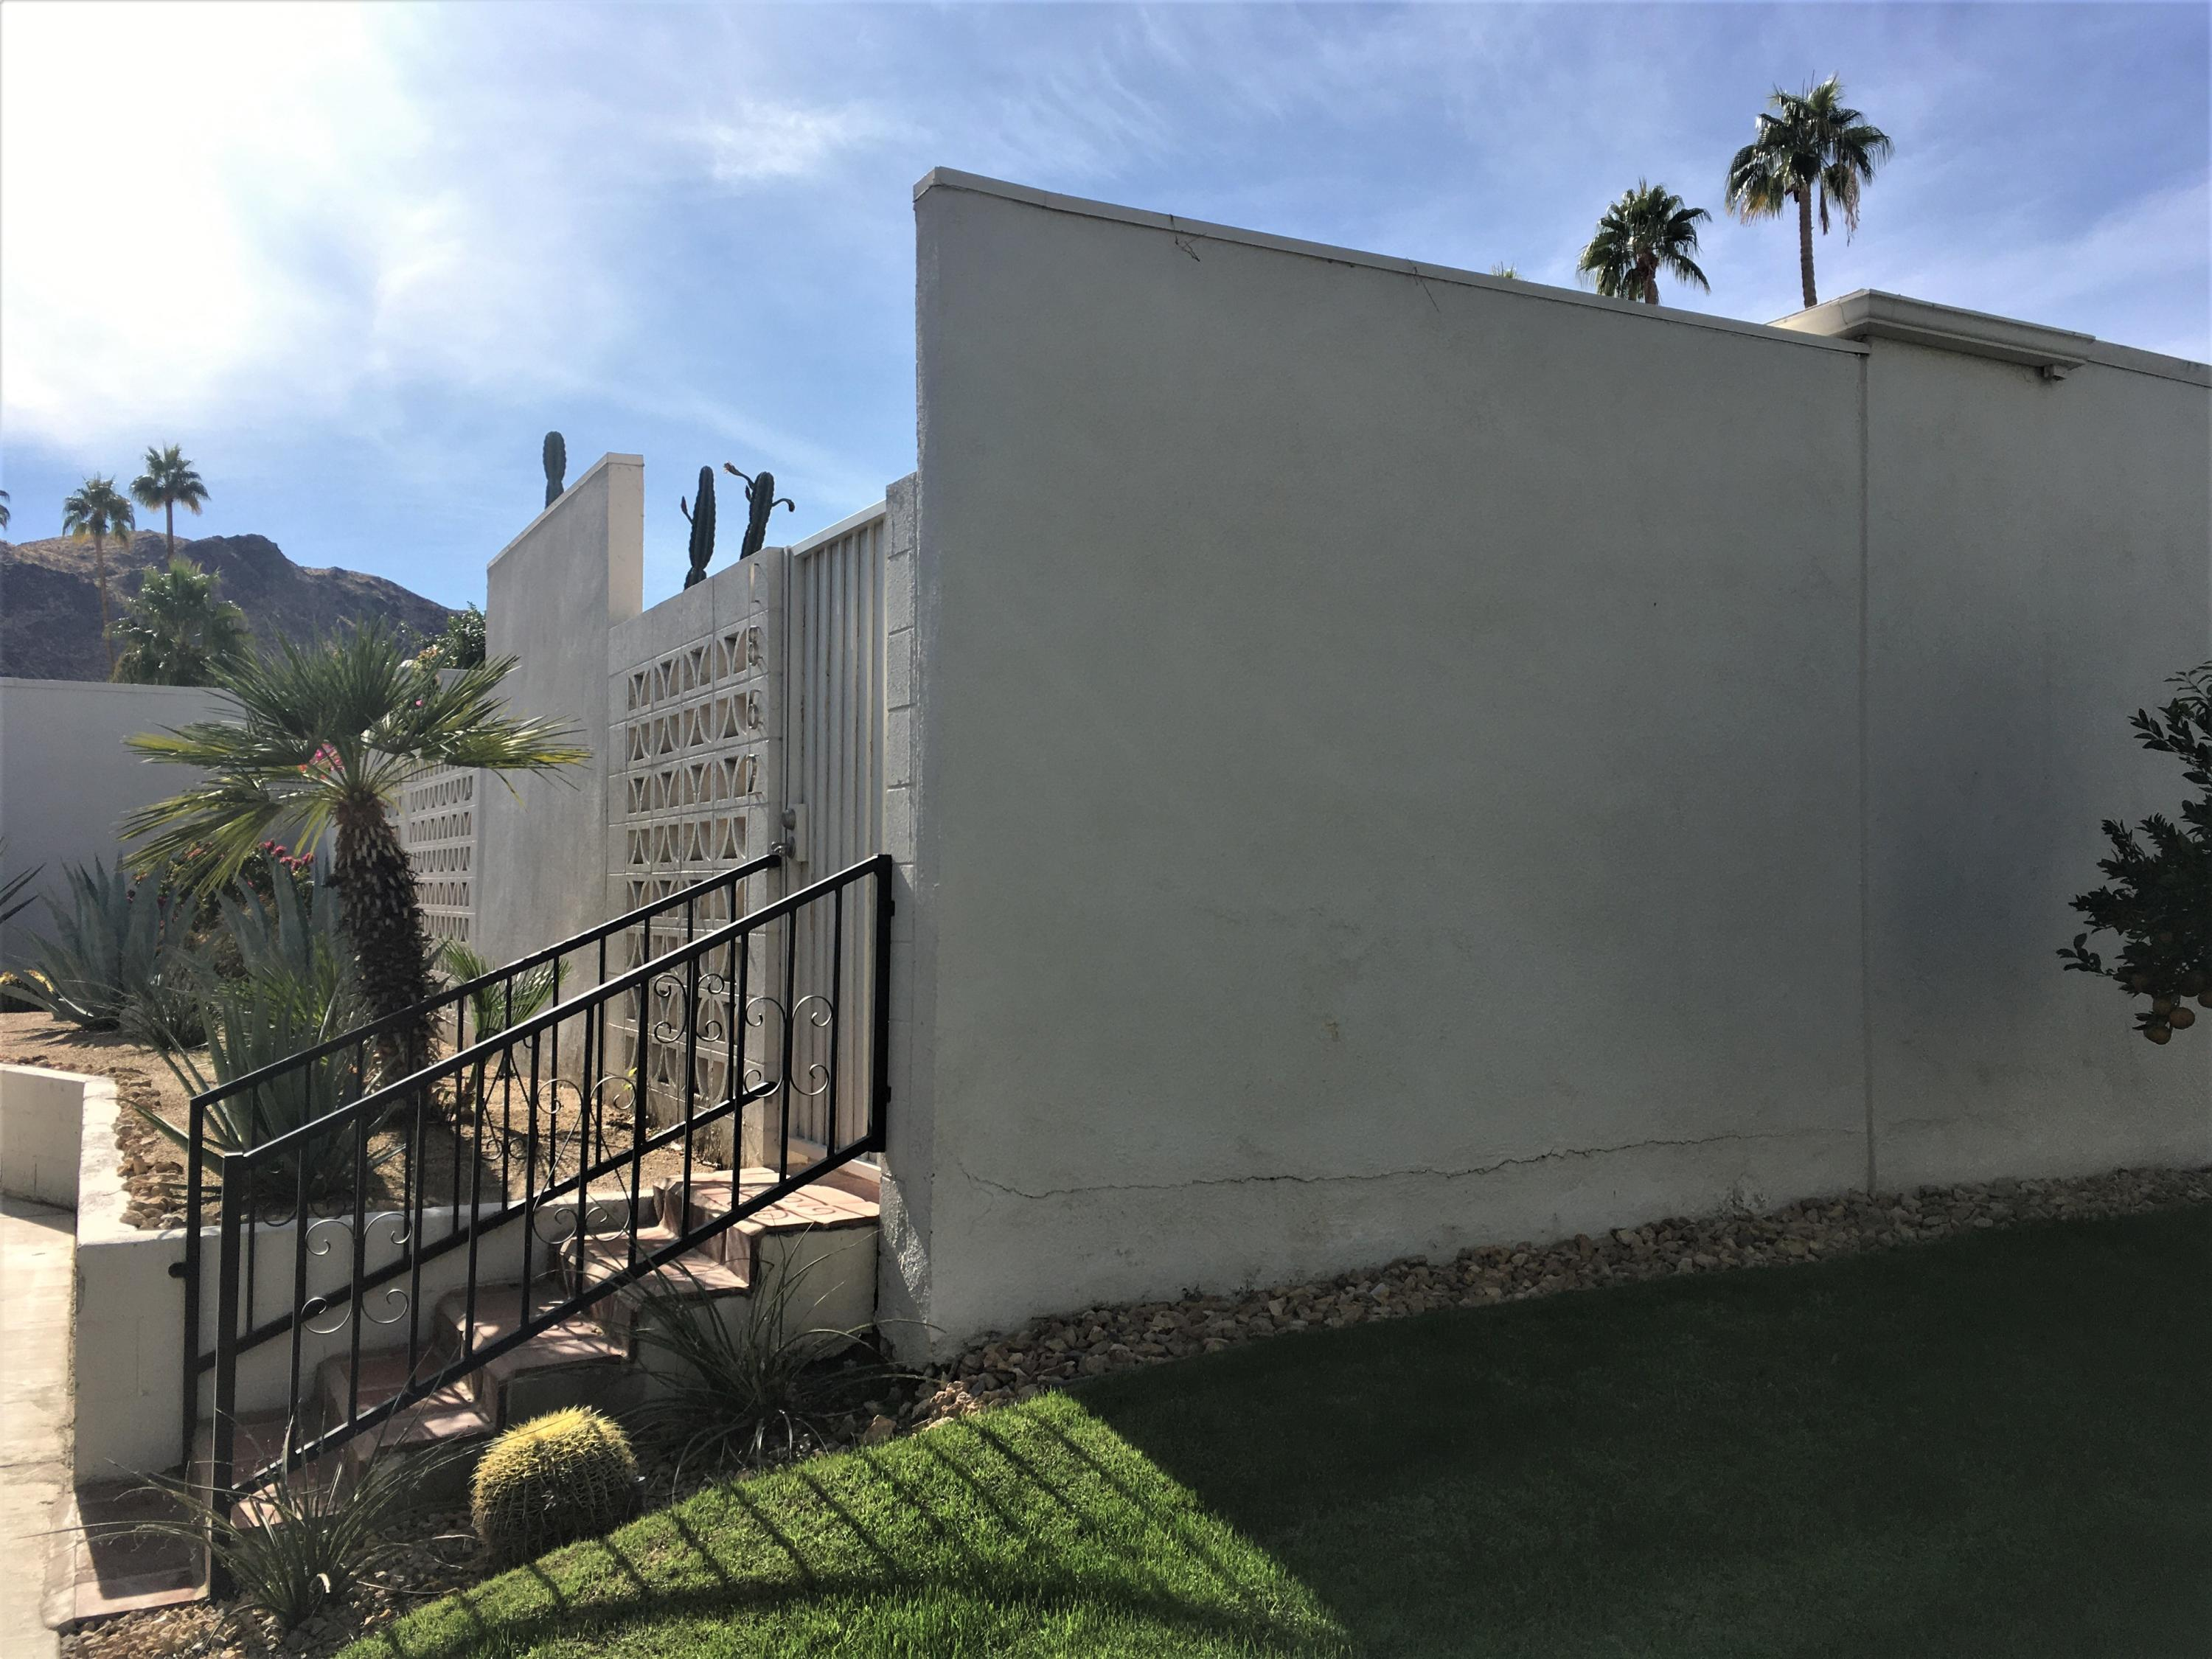 1862 Sandcliff Road, Palm Springs, California 92264, 2 Bedrooms Bedrooms, ,2 BathroomsBathrooms,Residential,For Sale,1862 Sandcliff Road,219041503